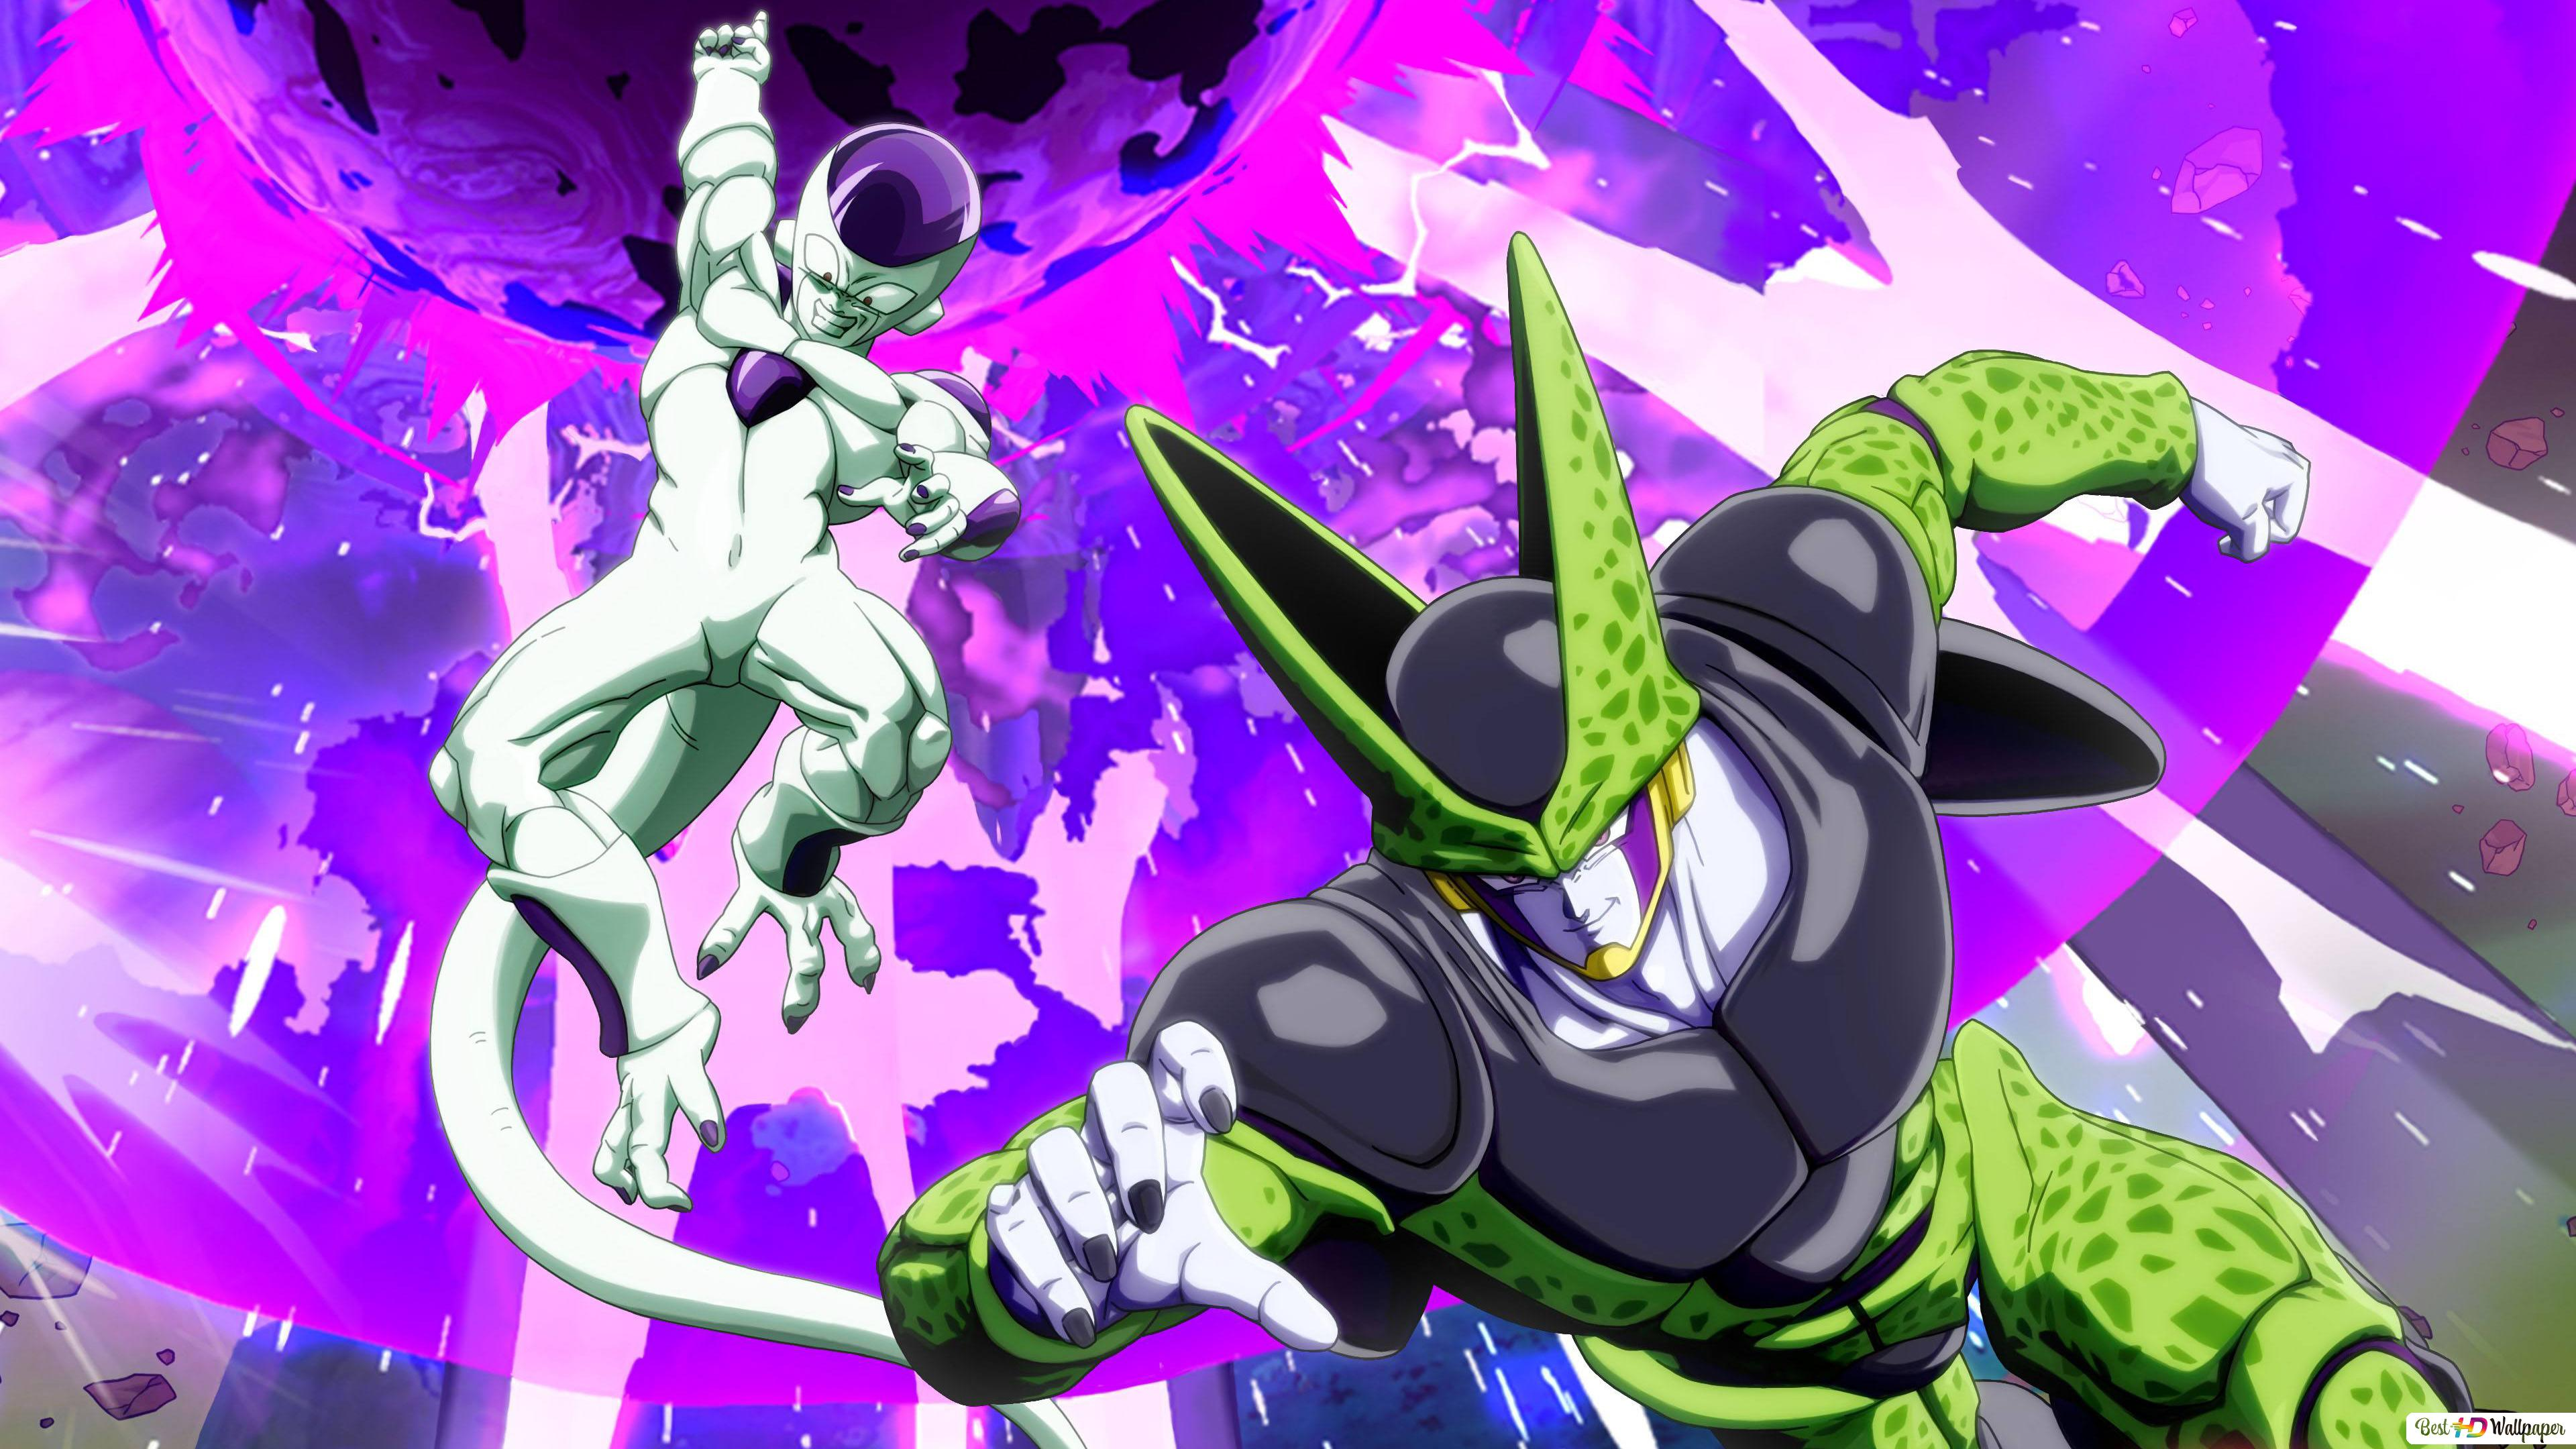 Cell And Frieza Of Dragonball Z Hd Wallpaper Download